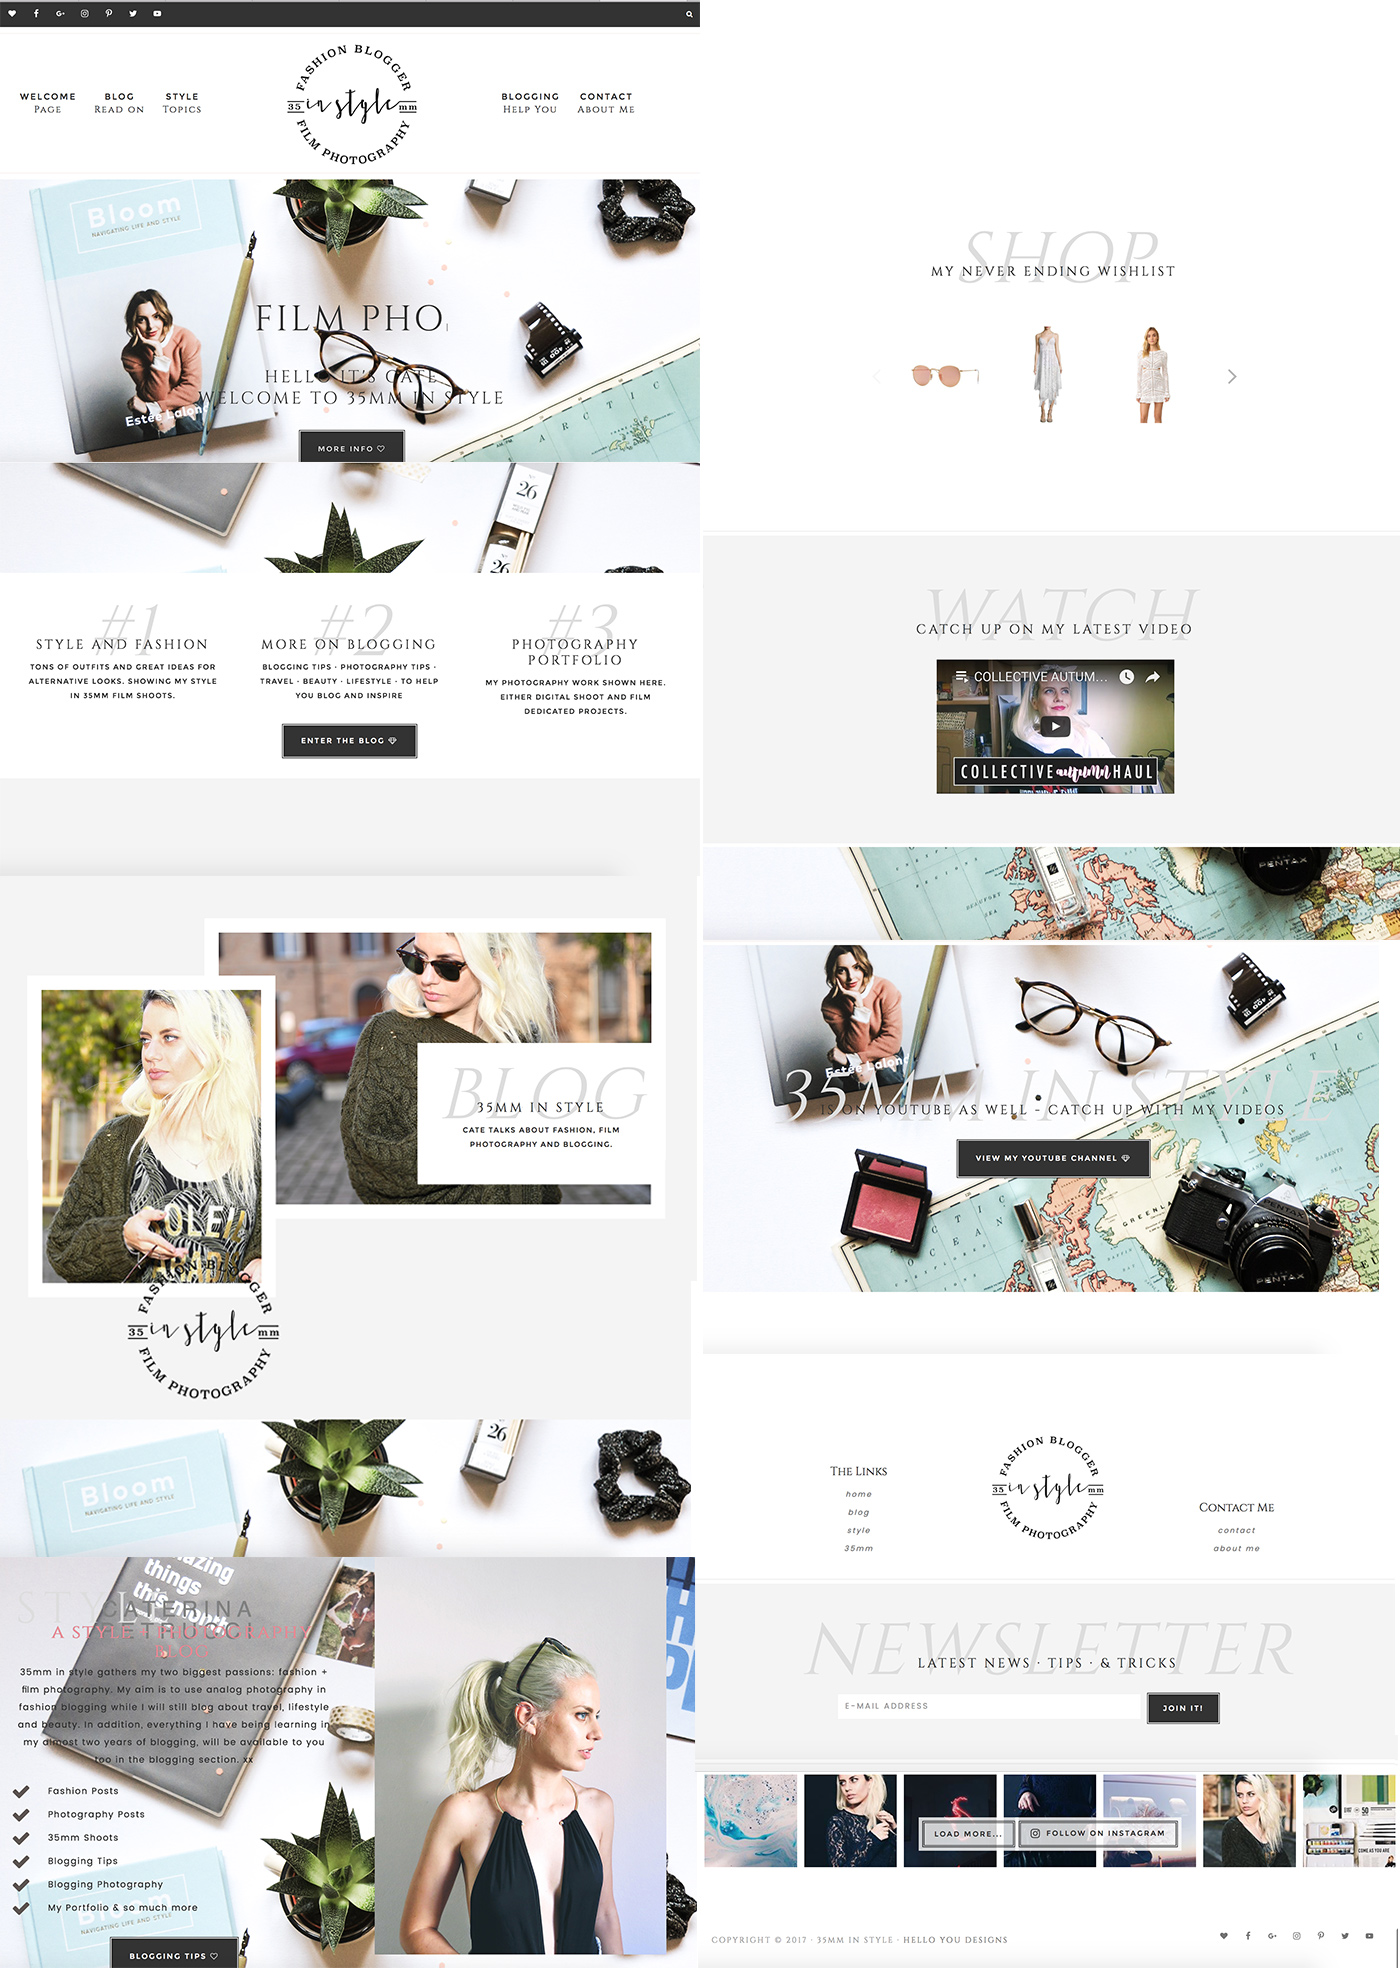 35mm in style blog layout and graphic